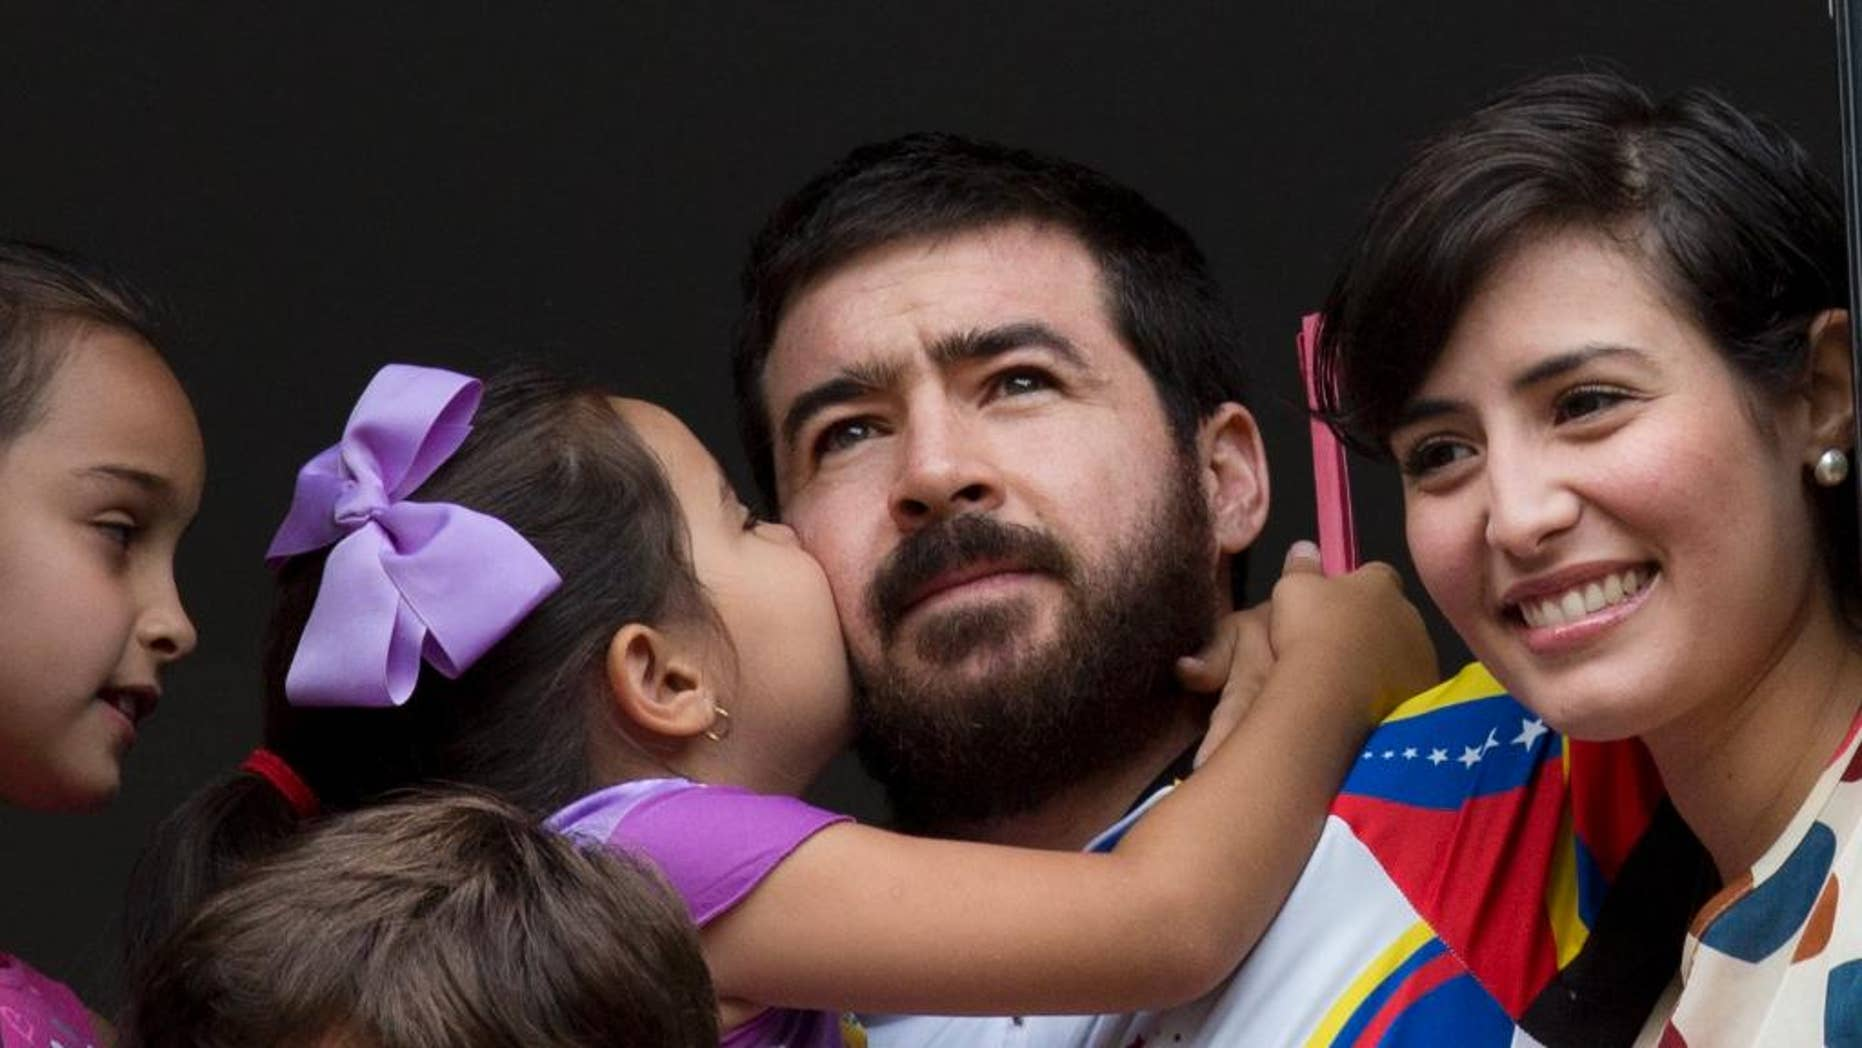 Maria Daniela kisses her father Daniel Ceballos, former mayor of the western city of San Cristobal, as he looks out from an apartment window with his wife Patricia de Ceballos, right, daughter Maria Veronica, left, and son Juan Daniel in Caracas, Venezuela, Wednesday, Aug. 12, 2015. One of Venezuela's most prominent opposition leaders started his first day of house arrest Wednesday after a surprise release following a year and a half in prison. The 31-year-old leader, who is awaiting trial on charges of civil rebellion, suffered from kidney and stomach problems during a 20-day hunger strike in June, according to his supporters.  (AP Photo/Ariana Cubillos)